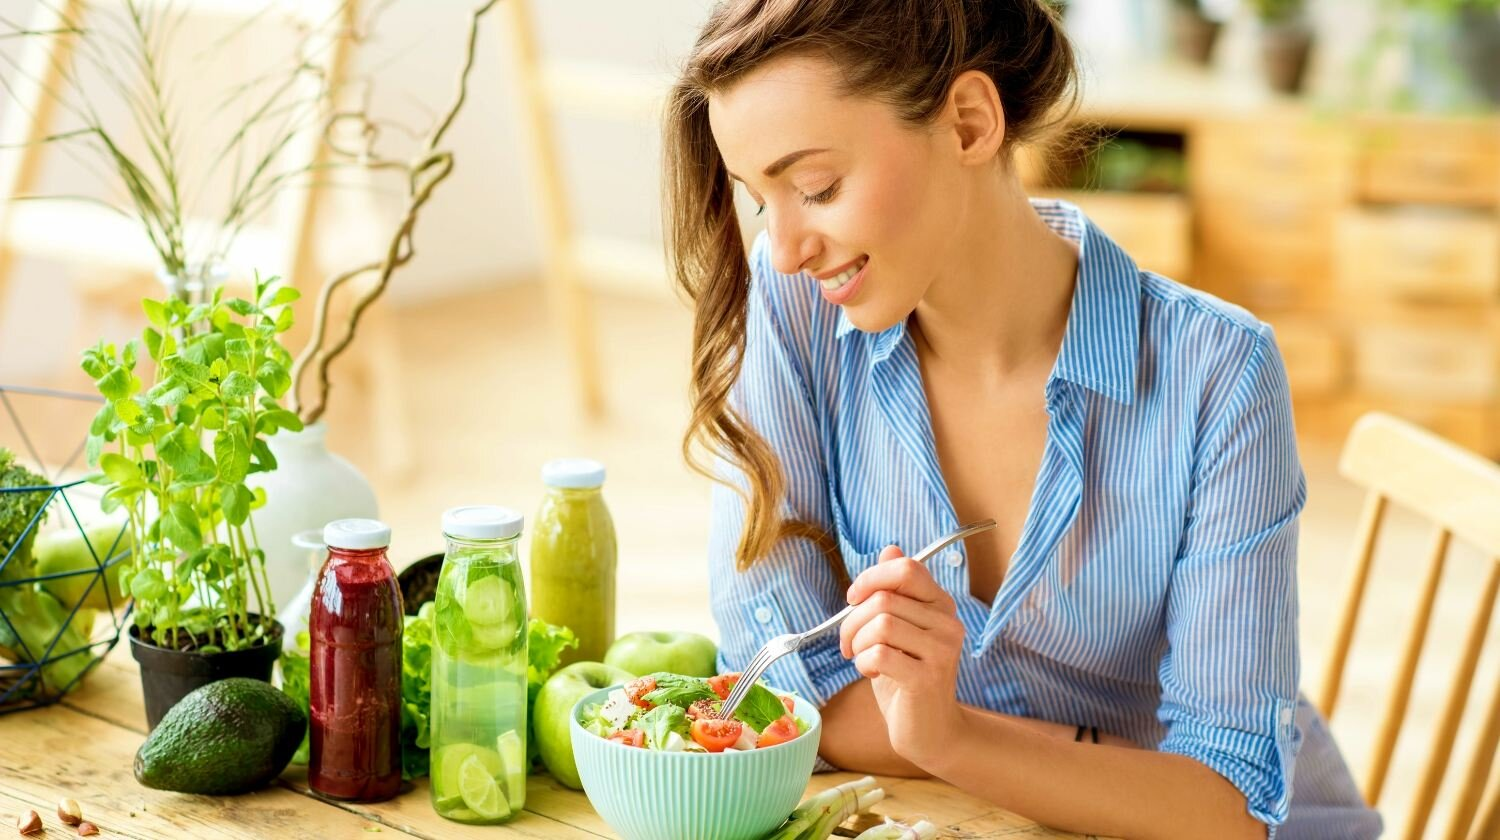 young-happy-woman-eating-healthy-salad-clean-ur-colon-ss-Featured.jpg